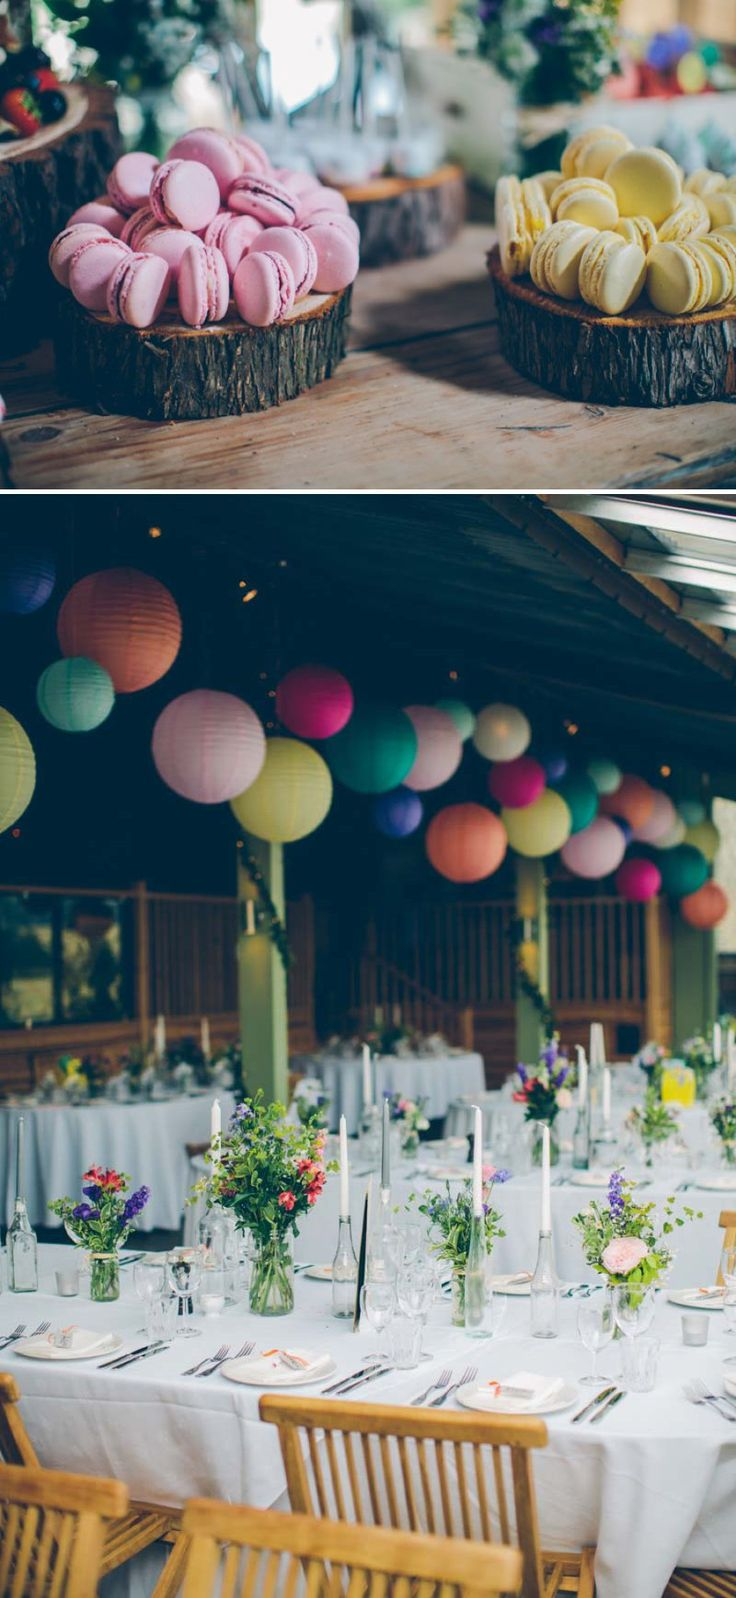 Colourful Contemporary Wedding At Cripps Stone Barn In The Cotswolds With Bride In Charlie Brear Gown And Gold Jimmy Choo Peeptoes And Groom In Bespoke Suit By Marc Wallace With Groomsmen In Bowties 6 Candy Coloured Love.